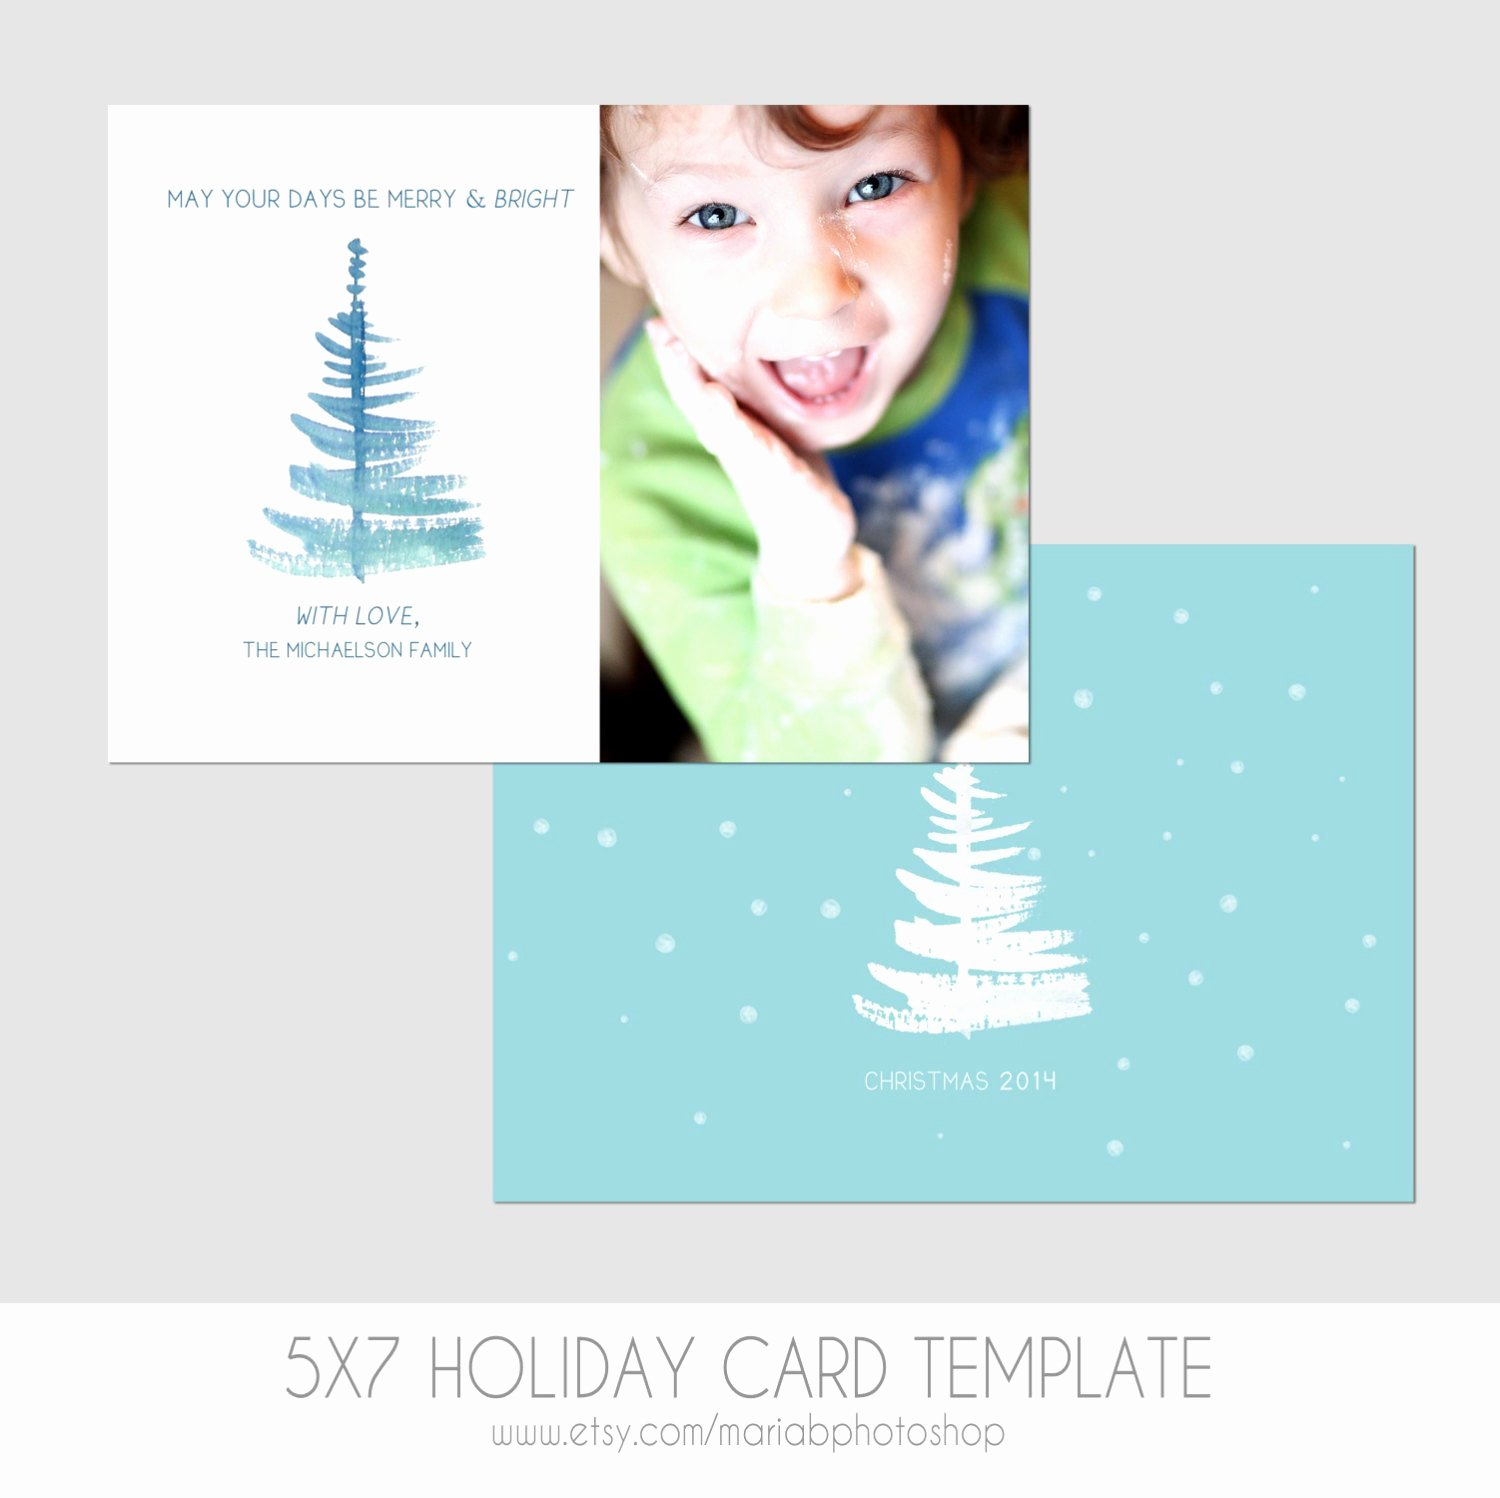 5x7 Postcard Template Photoshop Elegant 5x7 Christmas Card Template Front and Back by Mariabpaints